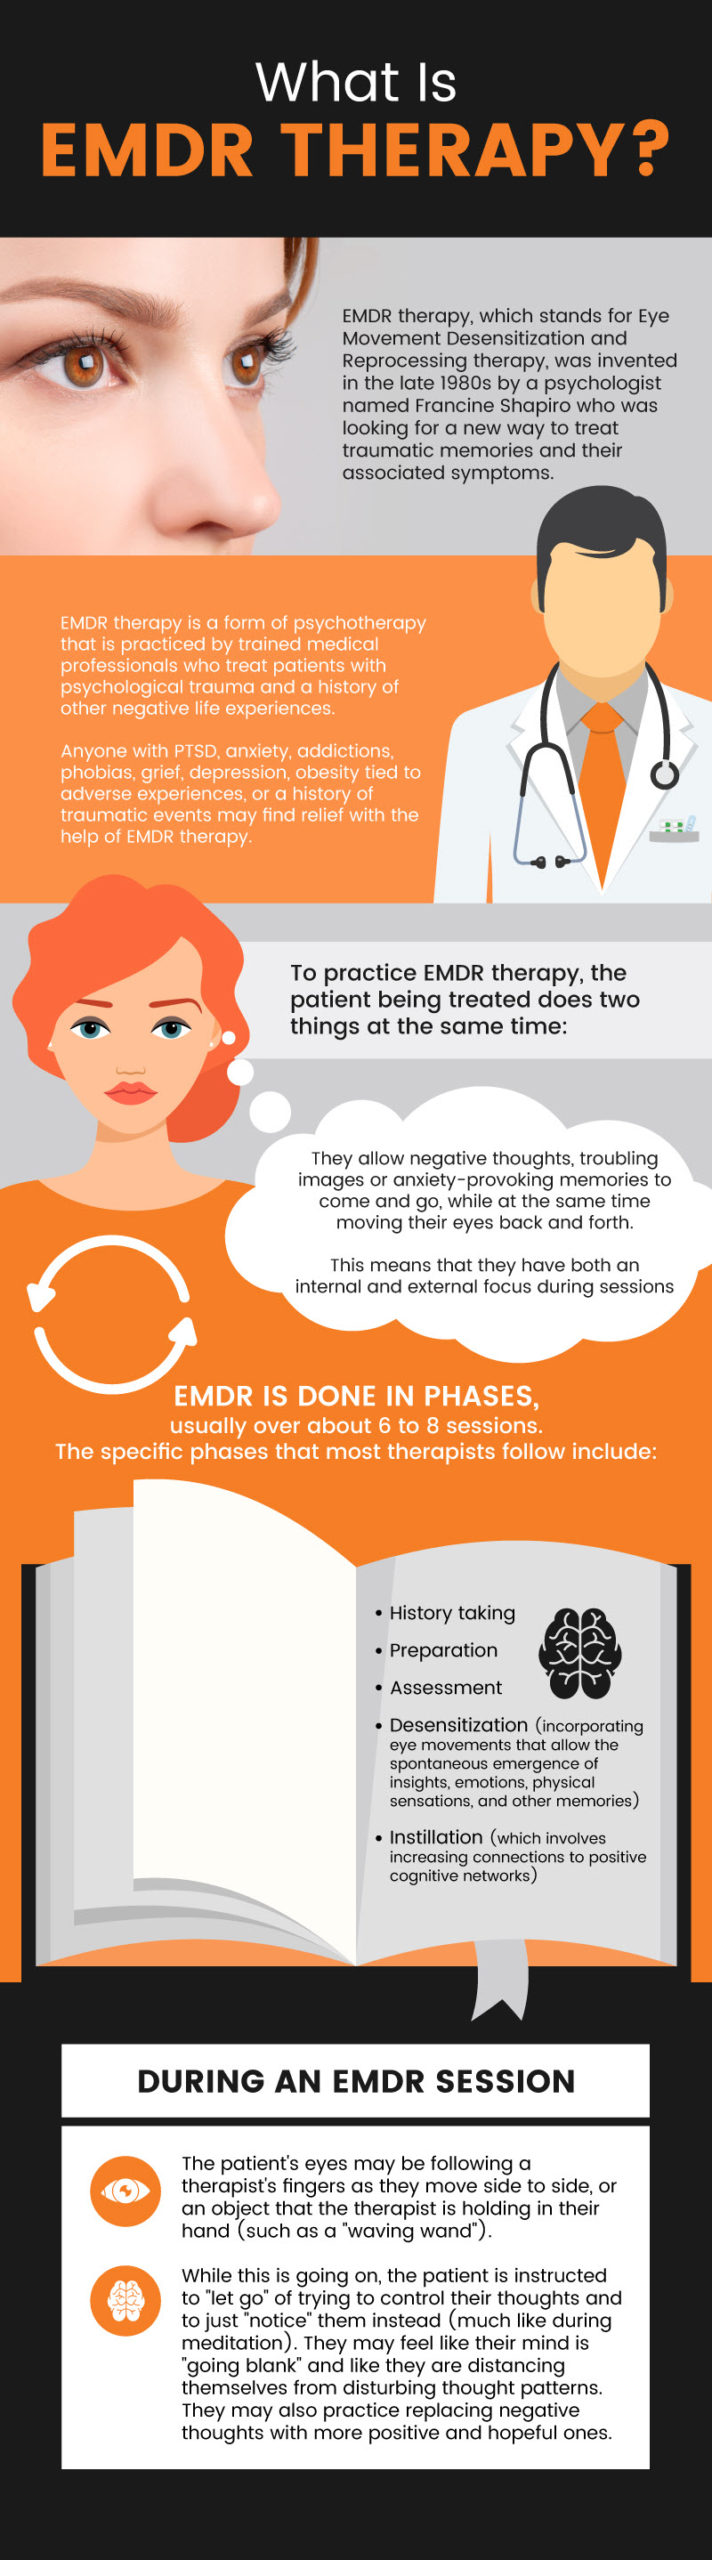 What is EMDR therapy? - MKexpress.net